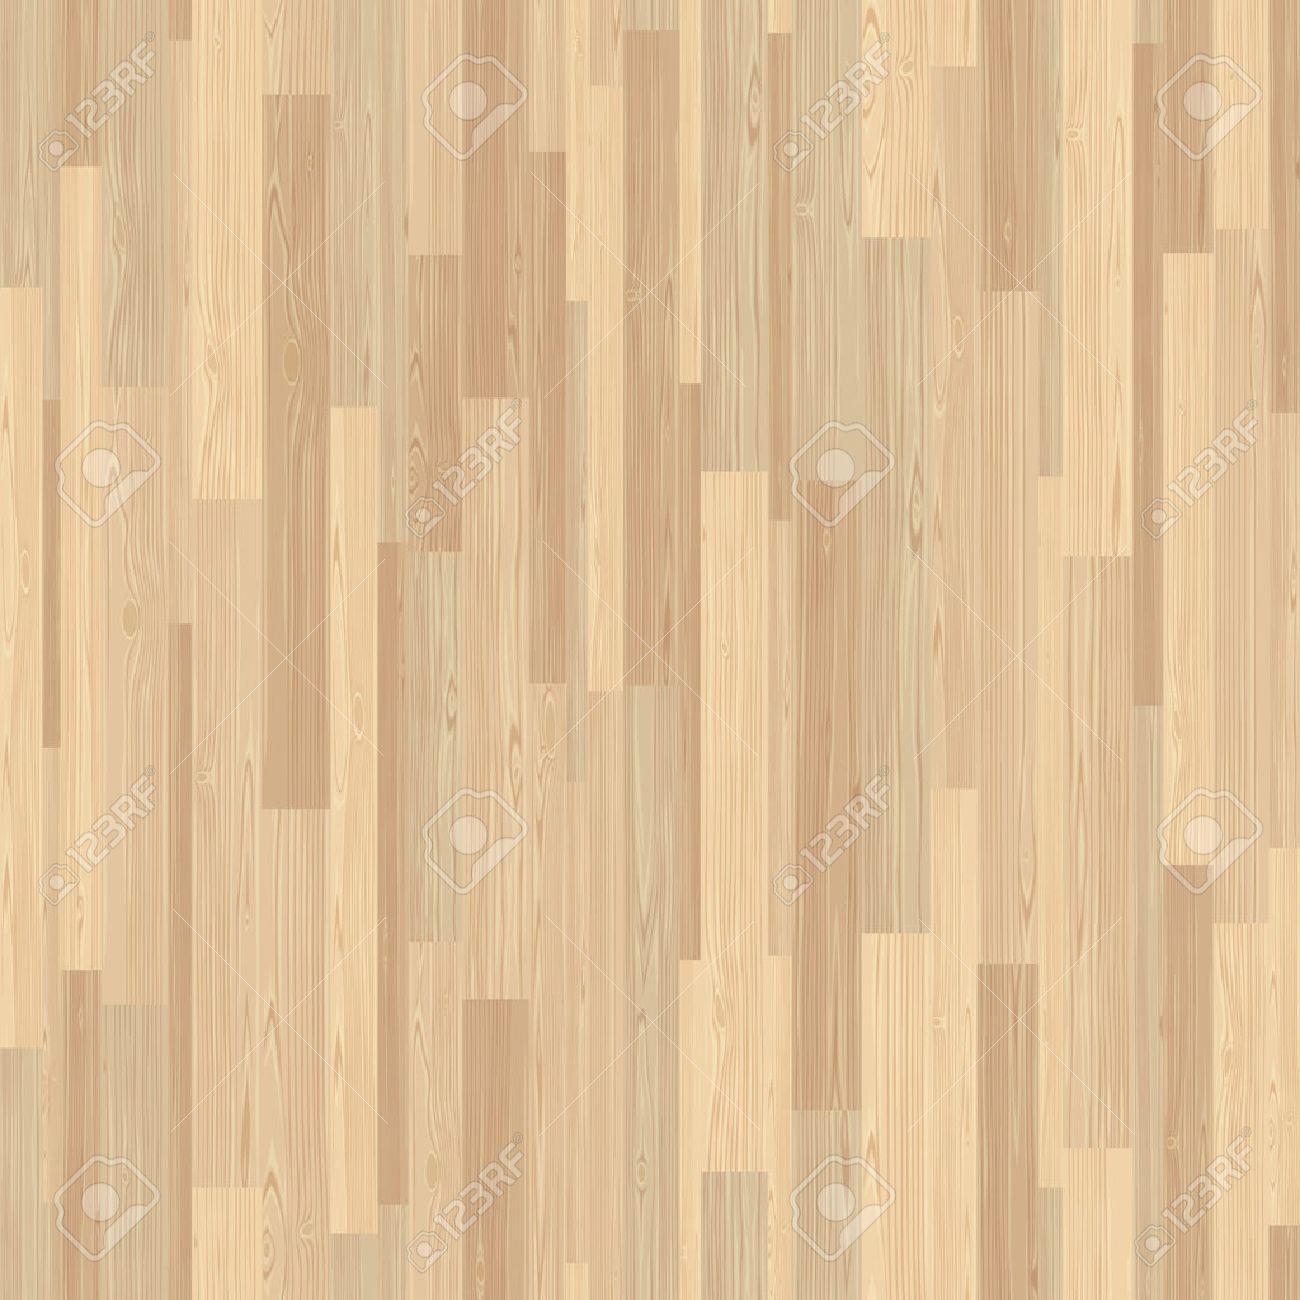 Light parquet seamless wooden floor stripe mosaic tile. Editable pattern in  swatches. Stock Vector - Light Parquet Seamless Wooden Floor Stripe Mosaic Tile. Editable